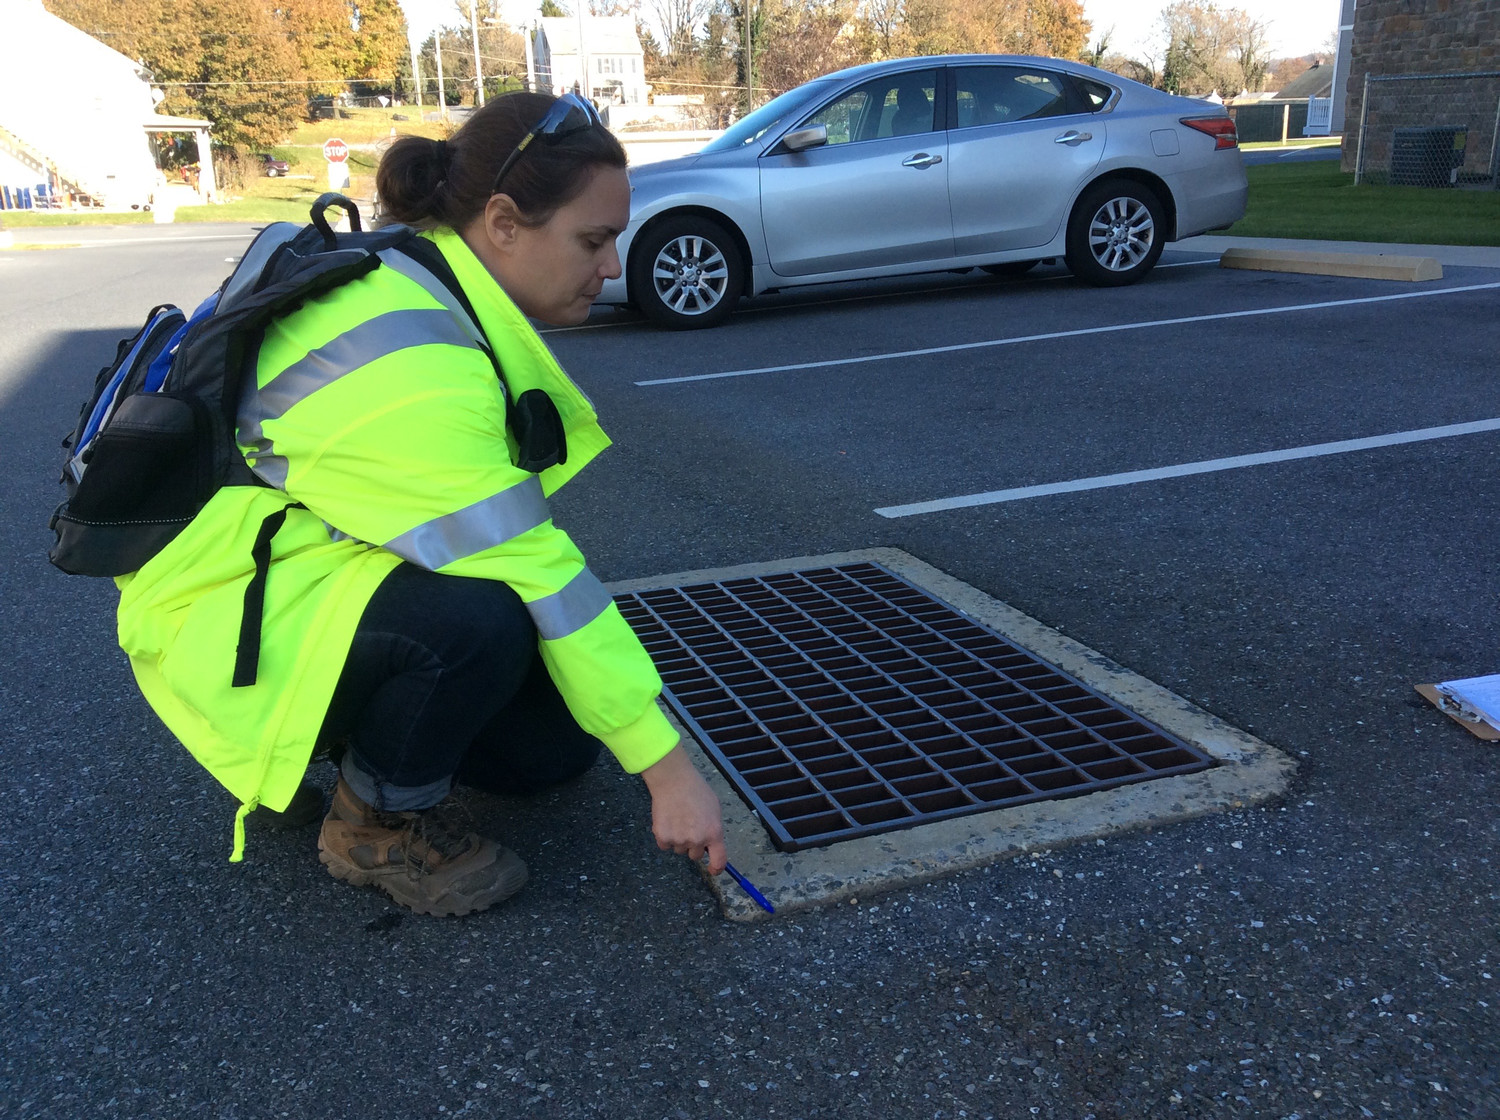 Penn State Harrisburg graduate student Sarah Ryan shows how stormwater is not flowing into a drain as it should, because the drain is sitting too high above the macadam.